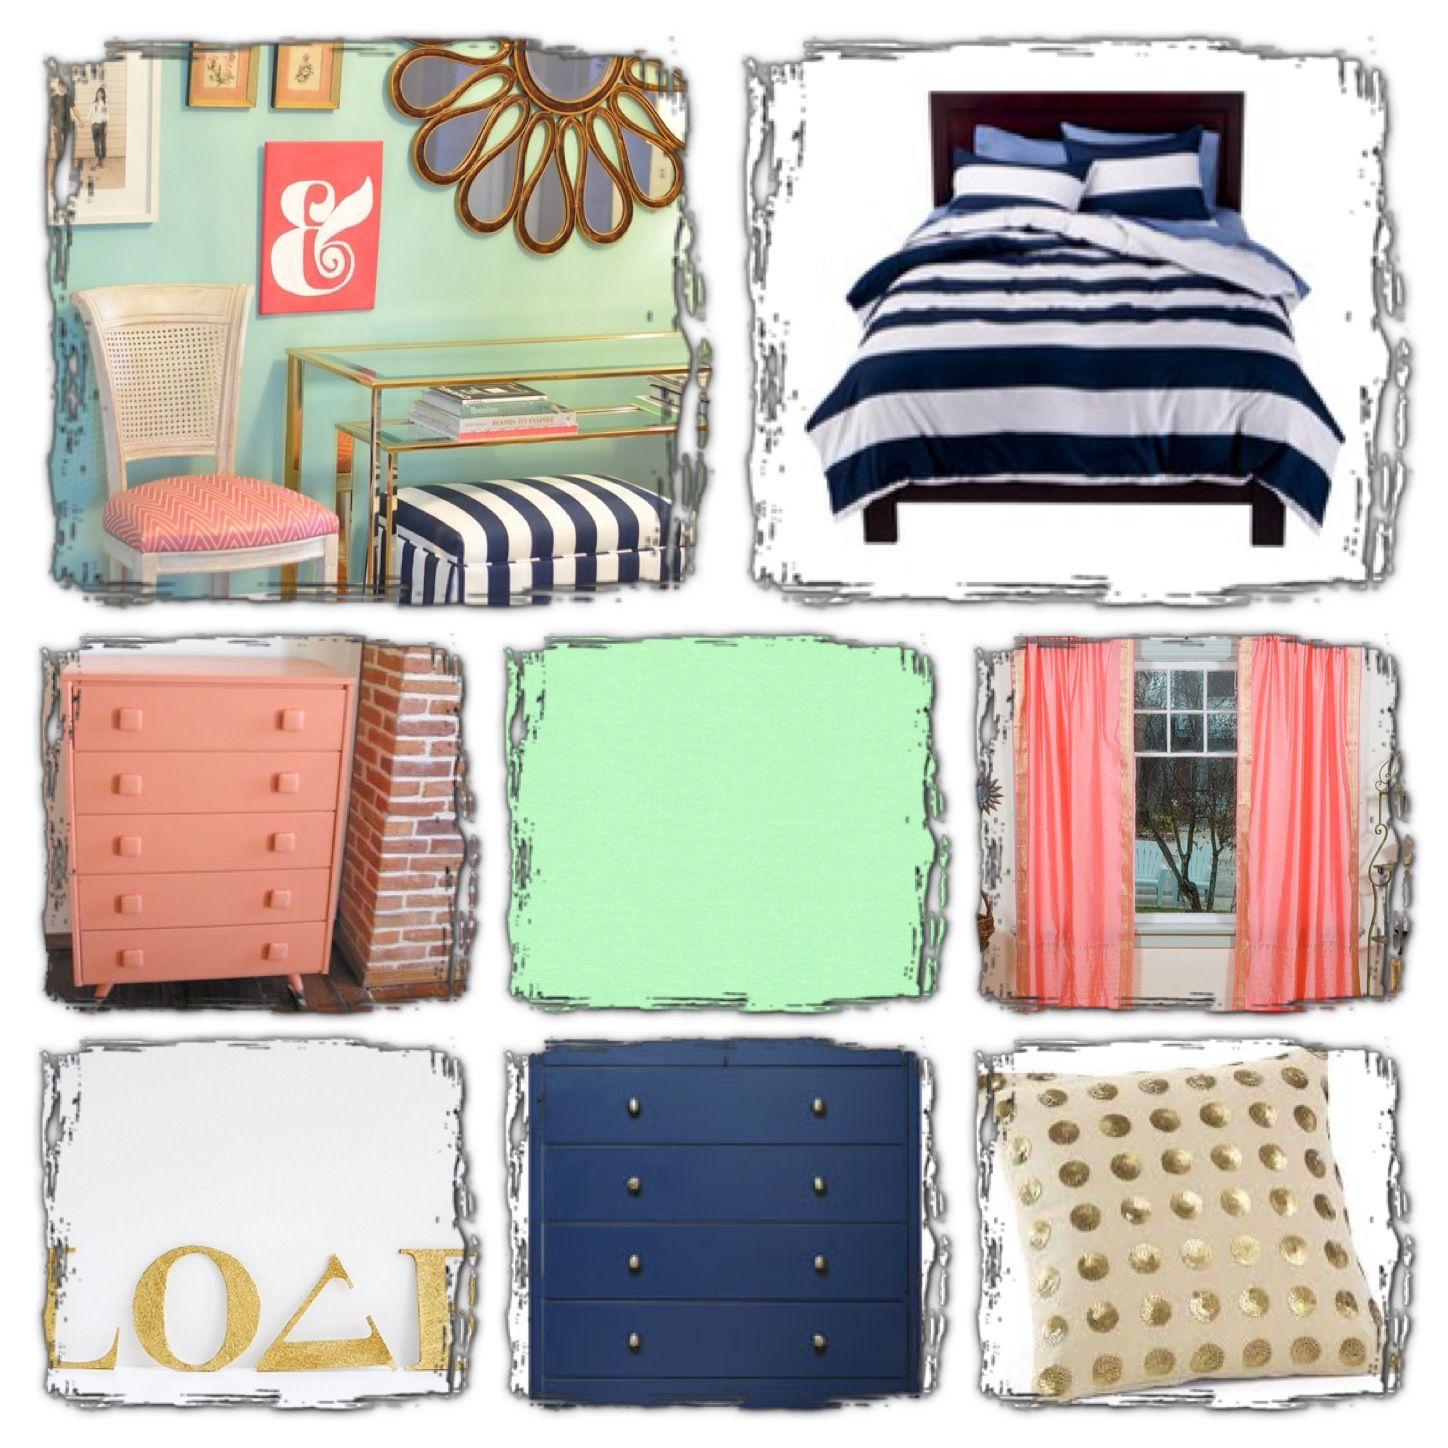 Peach Mint And Navy... Updated Bedroom Board:)